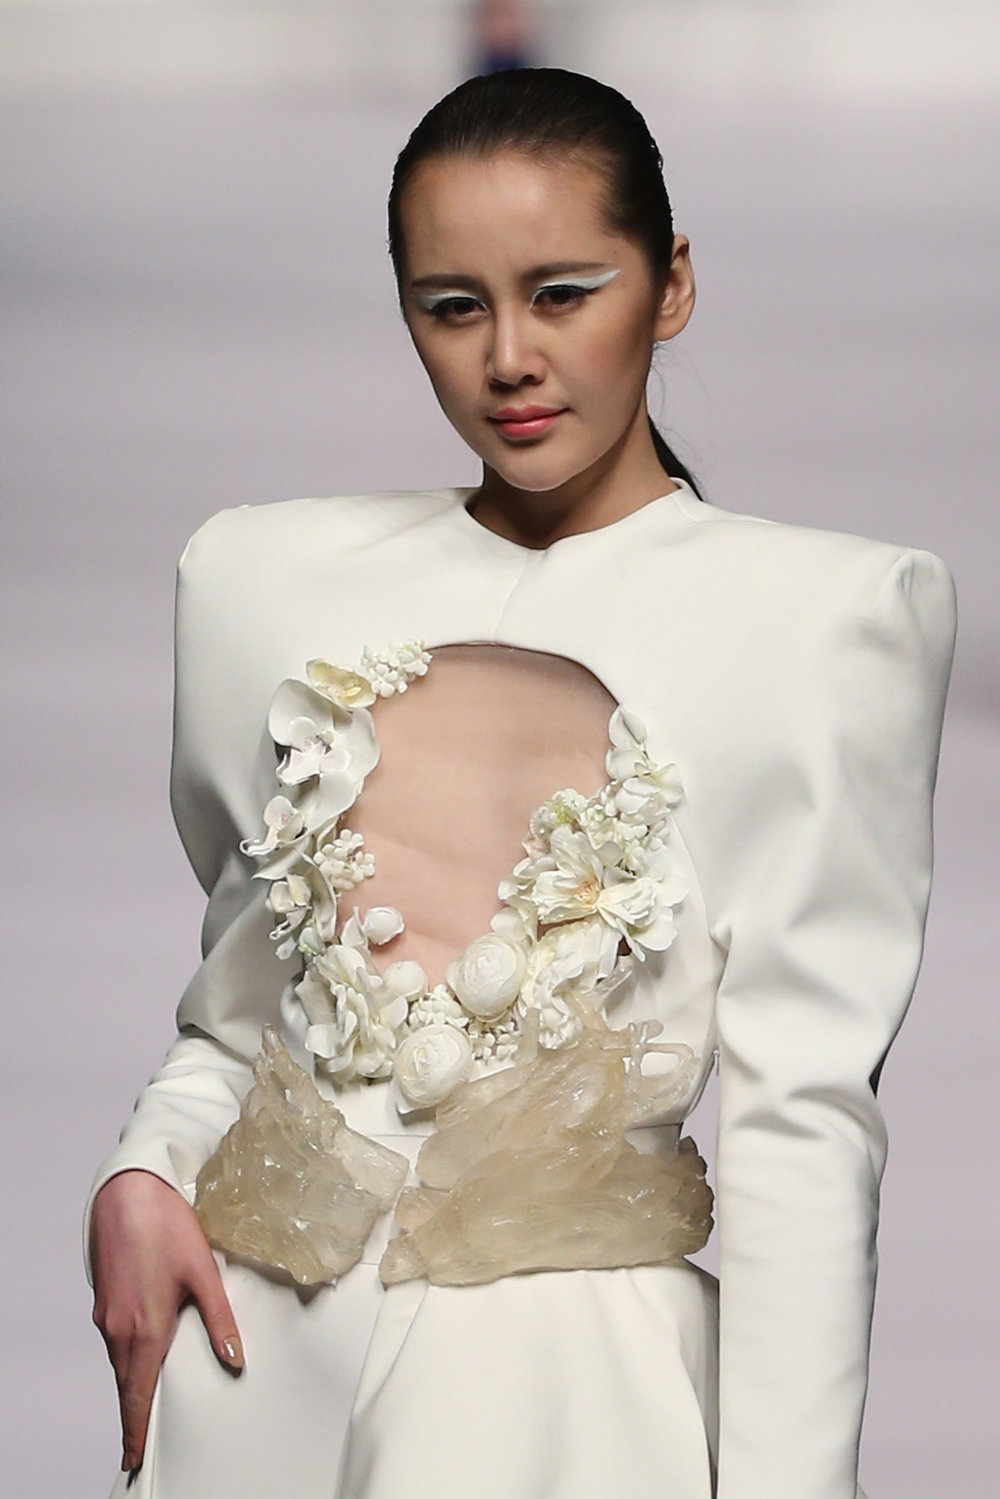 . A model showcases designs on the catwalk during Hempel Award the 21st China International Young Fashion Designers Contest  on the second day of Mercedes-Benz China Fashion Week Autumn/Winter 2013/2014  at Banquet Hall of Beijing Hotel on March 25, 2013 in Beijing, China.  (Photo by Feng Li/Getty Images)